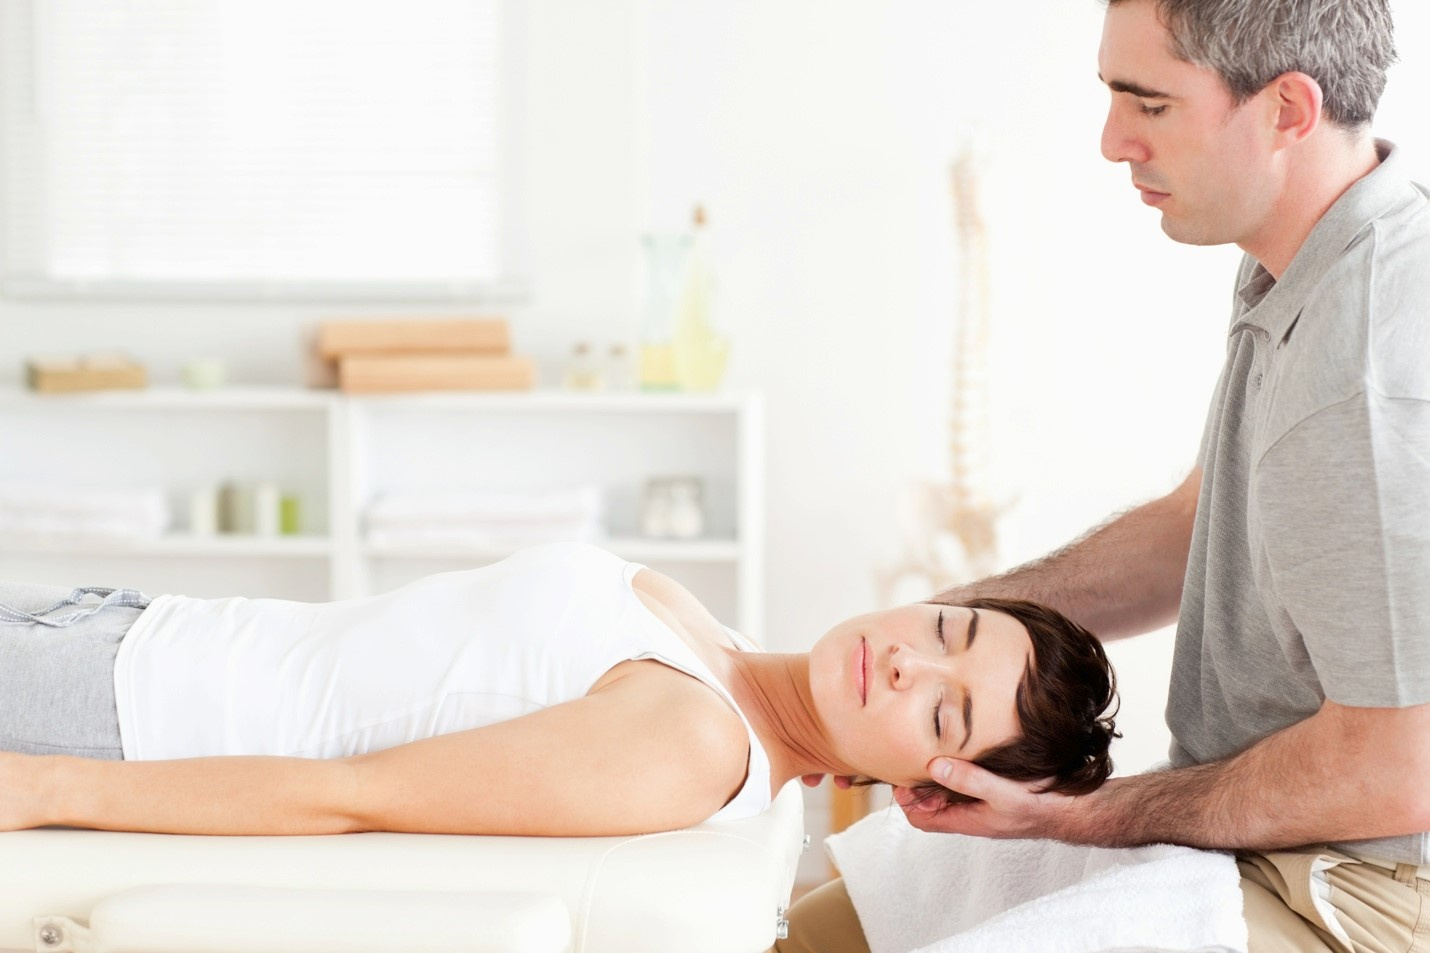 Full Service Chiropractic Practice on the Coast North of Portland